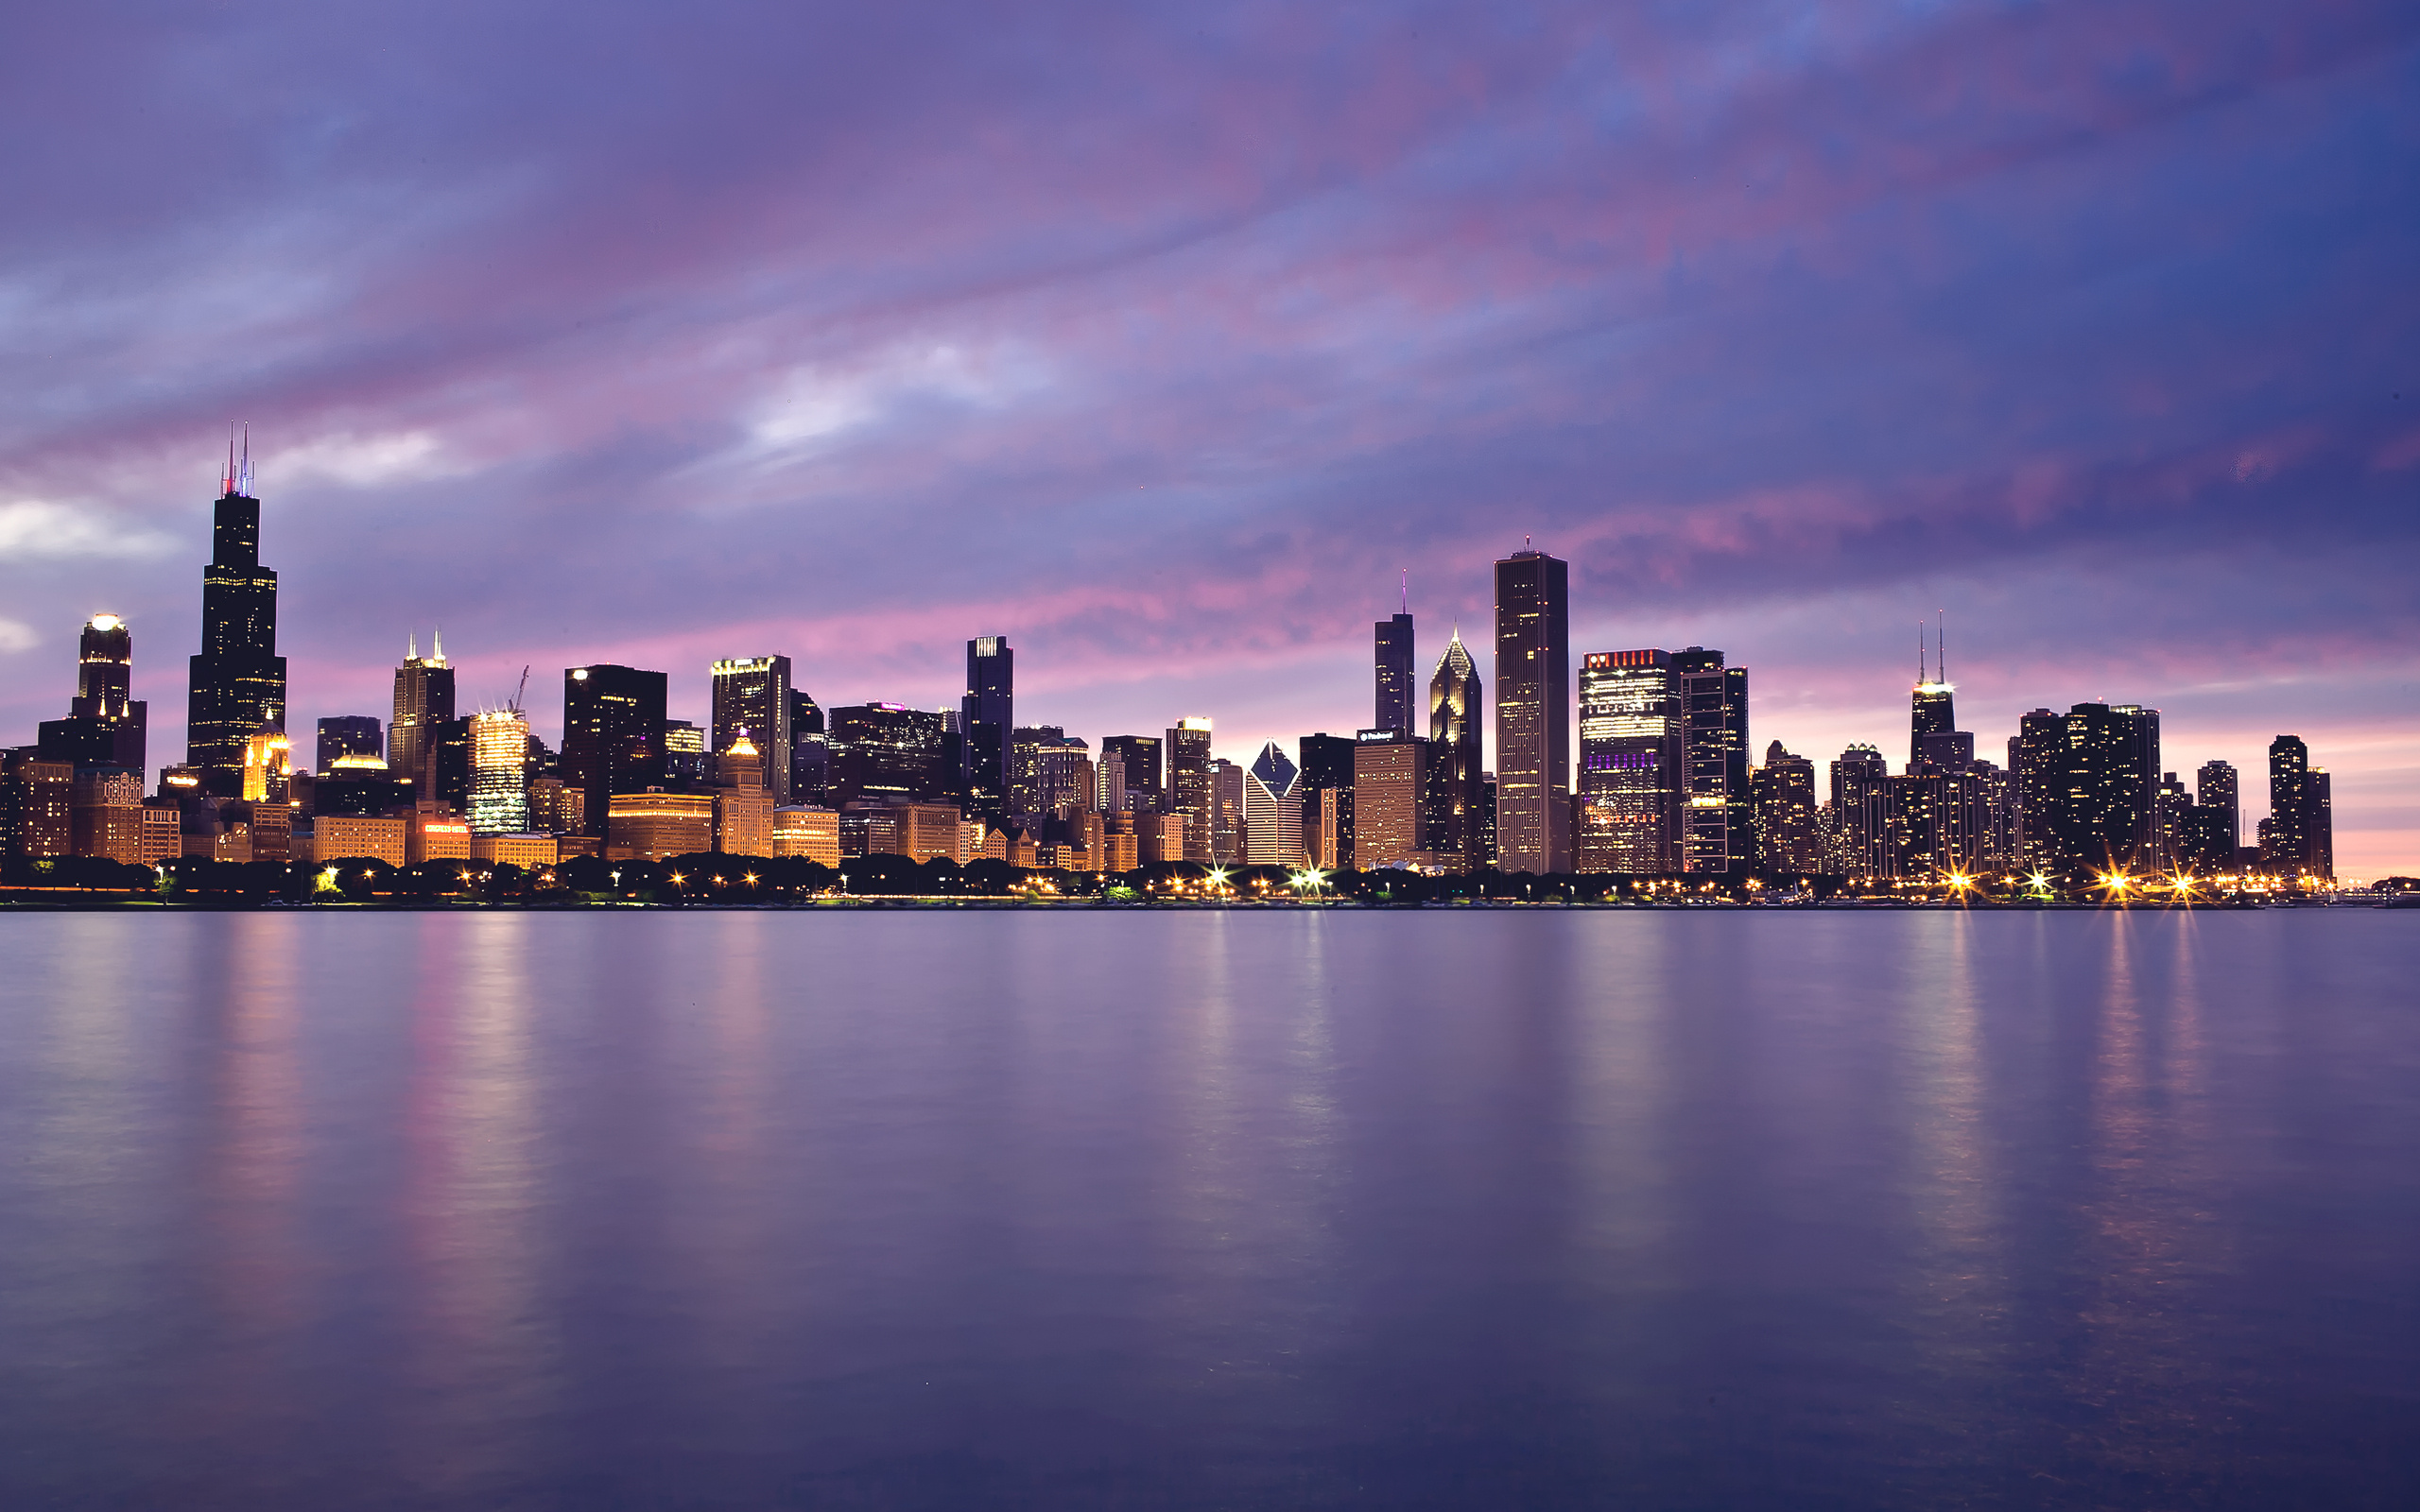 Beautiful Chicago Background wallpaper 2560x1600 21080 2560x1600